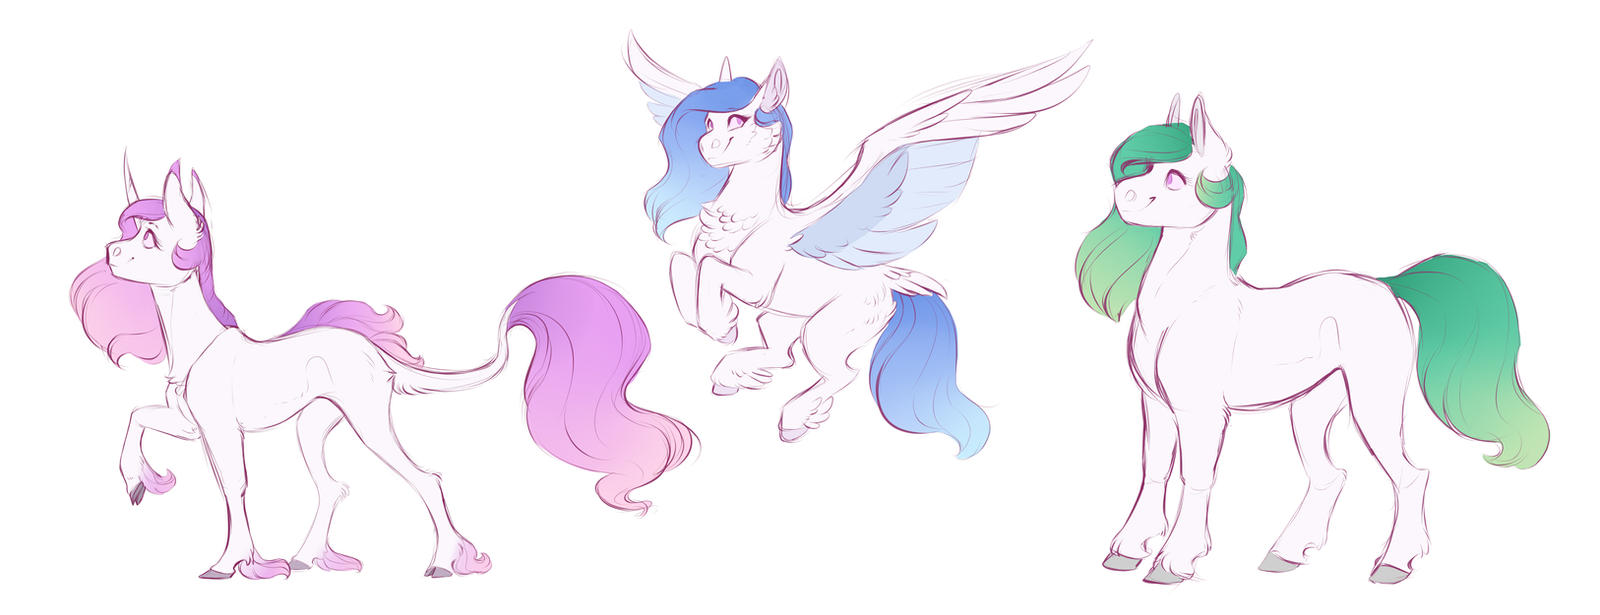 Celestial disguises by Vindhov